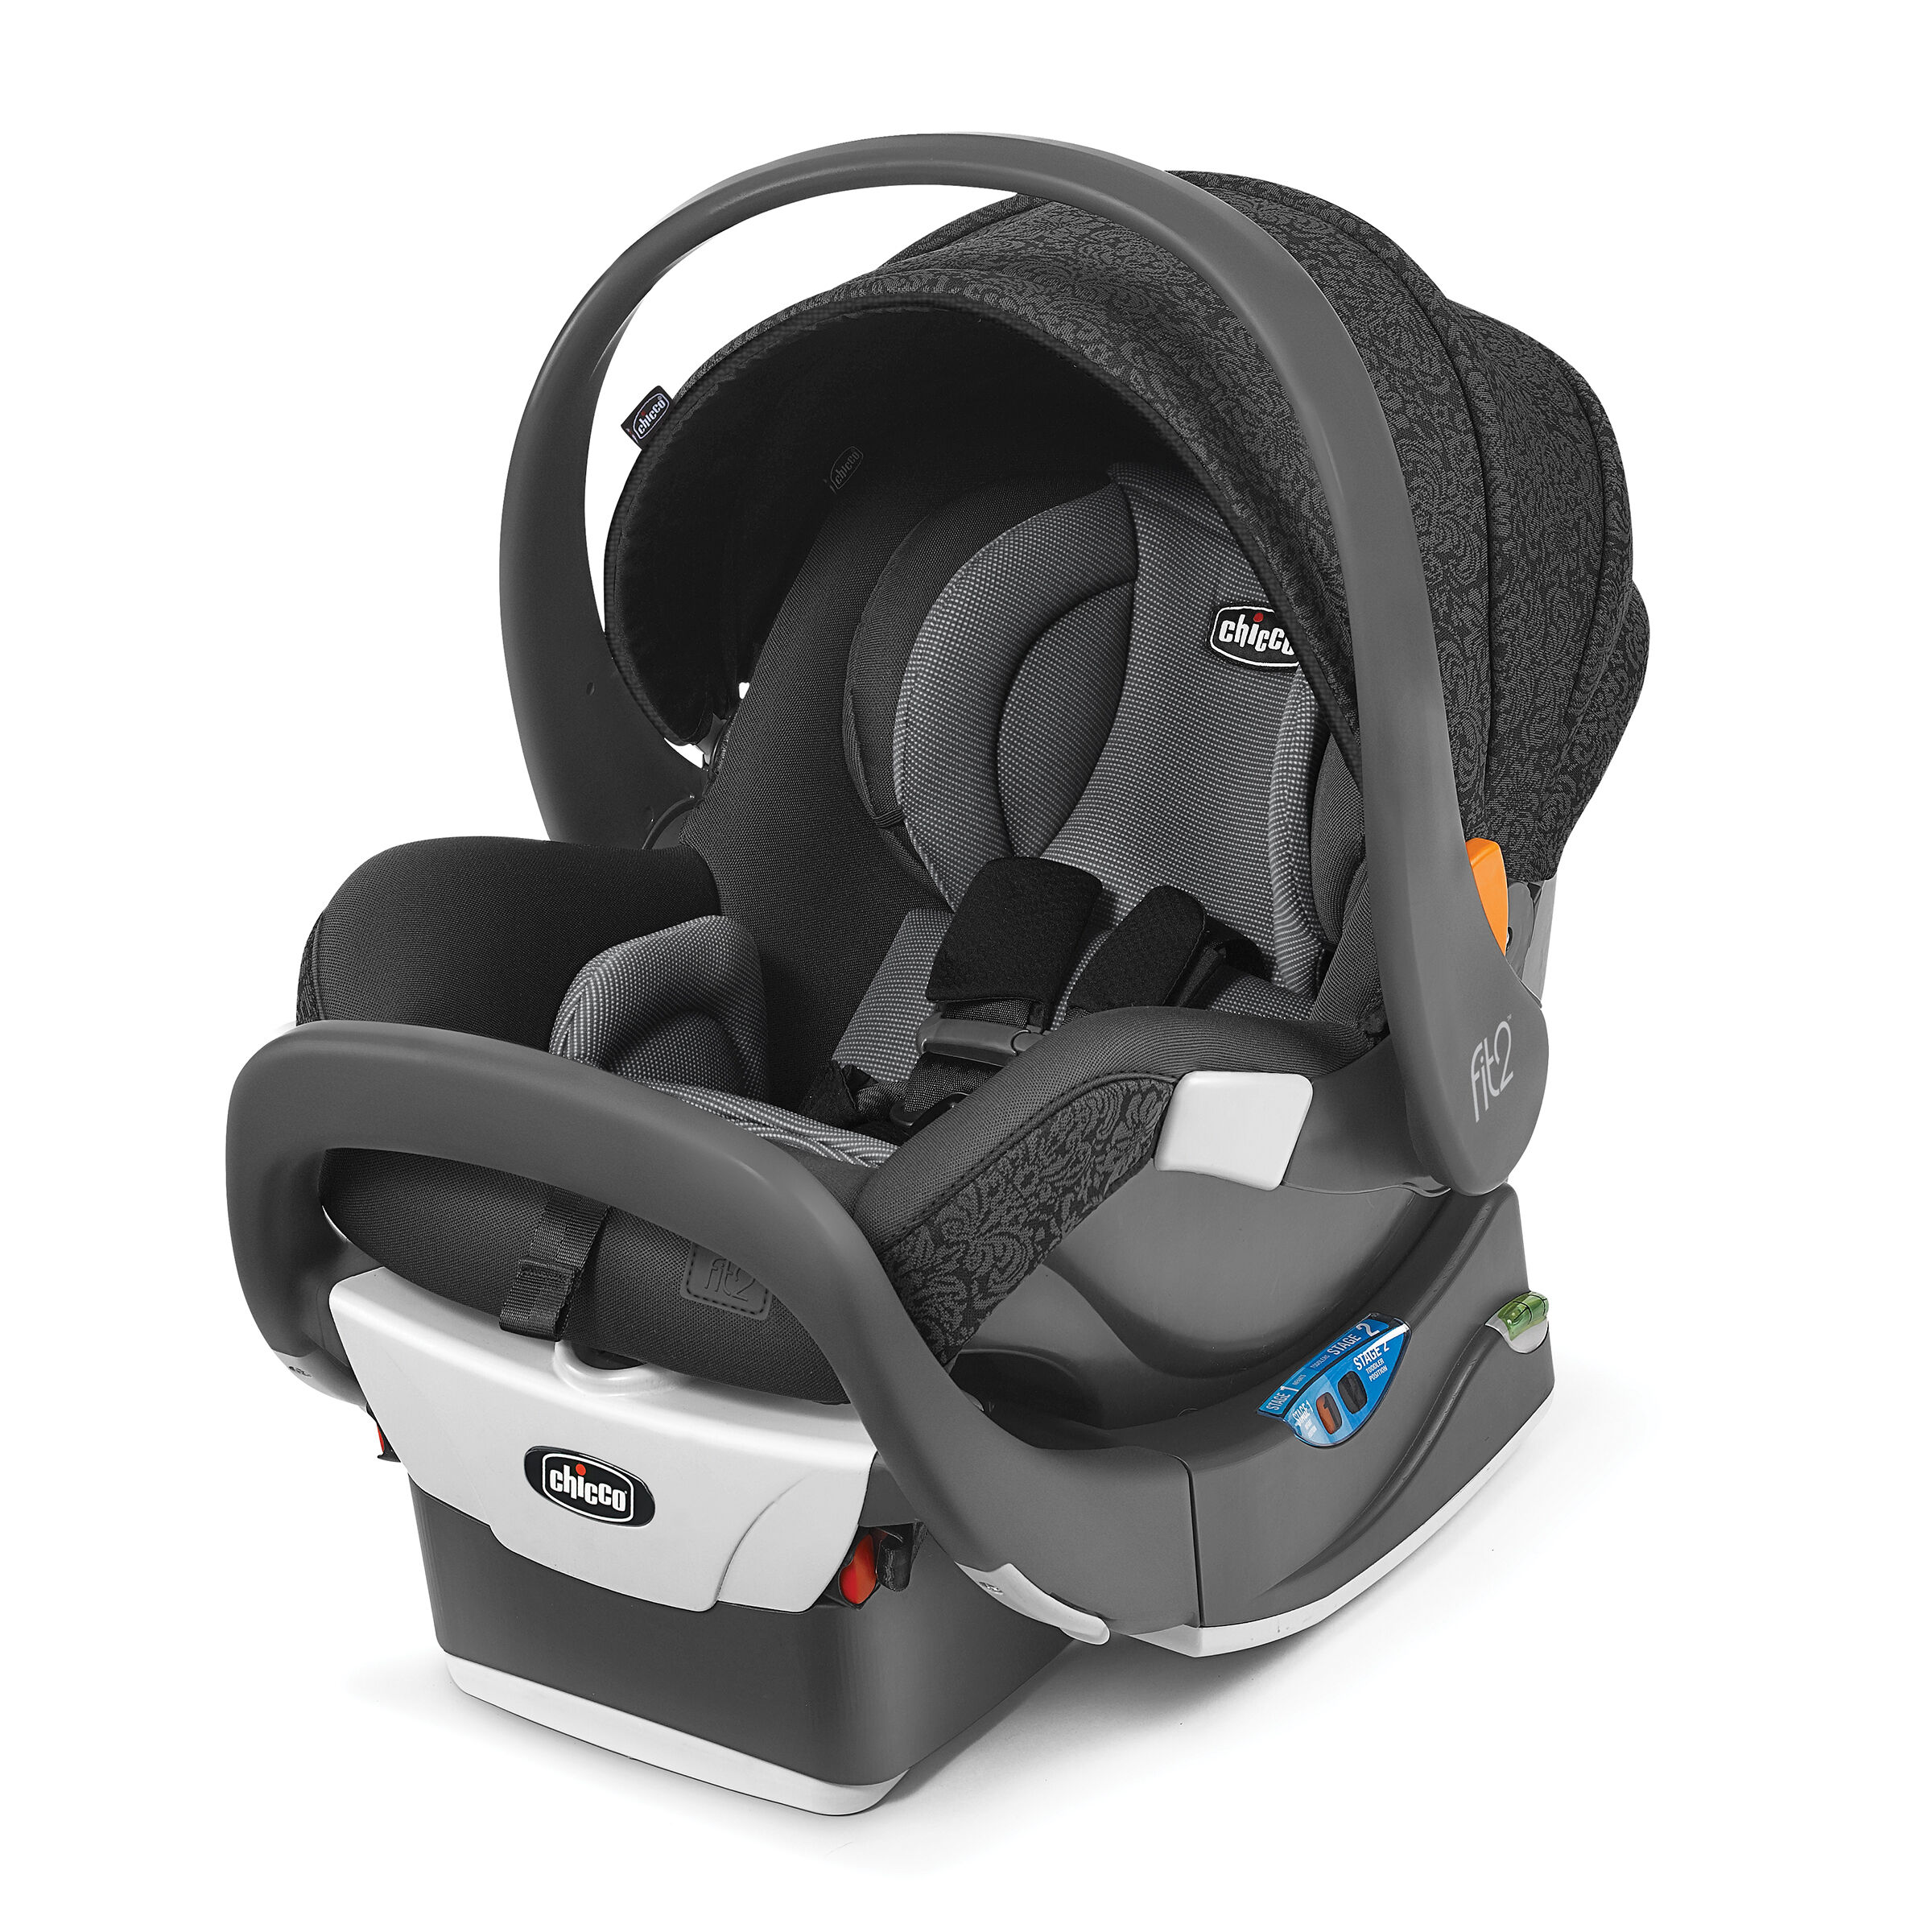 Chicco Fit2 Rear-Facing Infant & Toddler